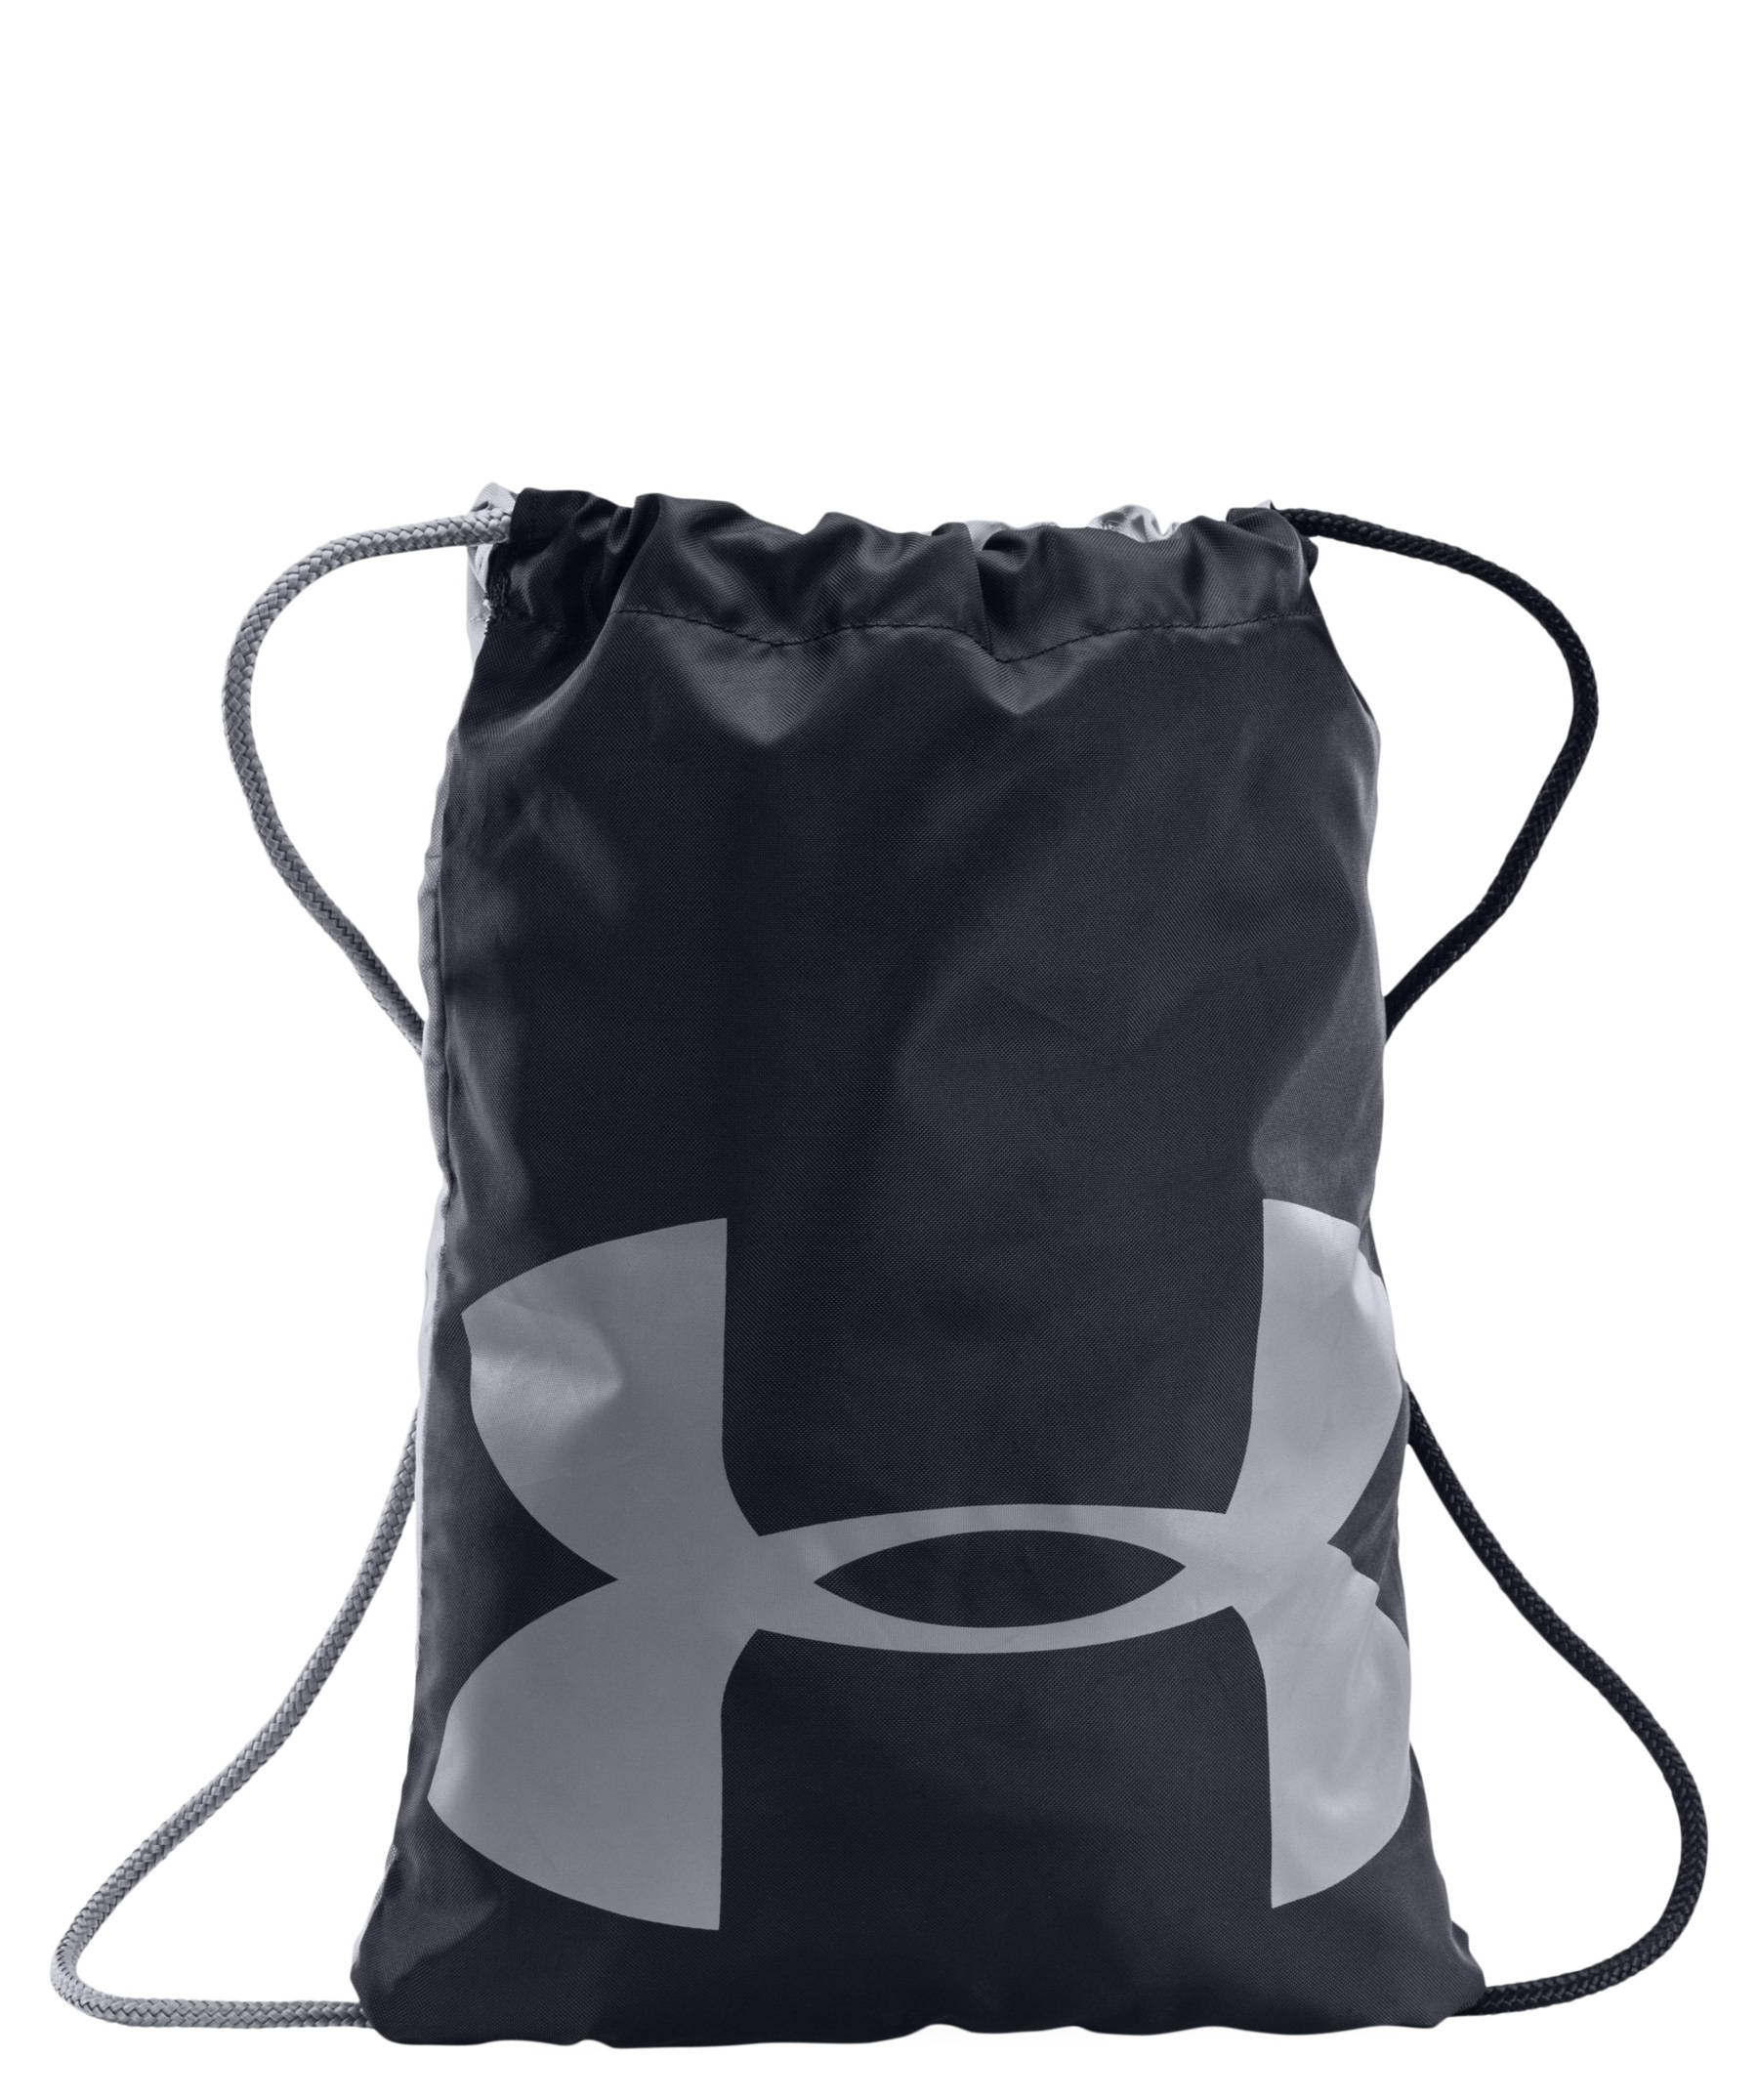 Under Armour Turnbeutel / Sportbeutel